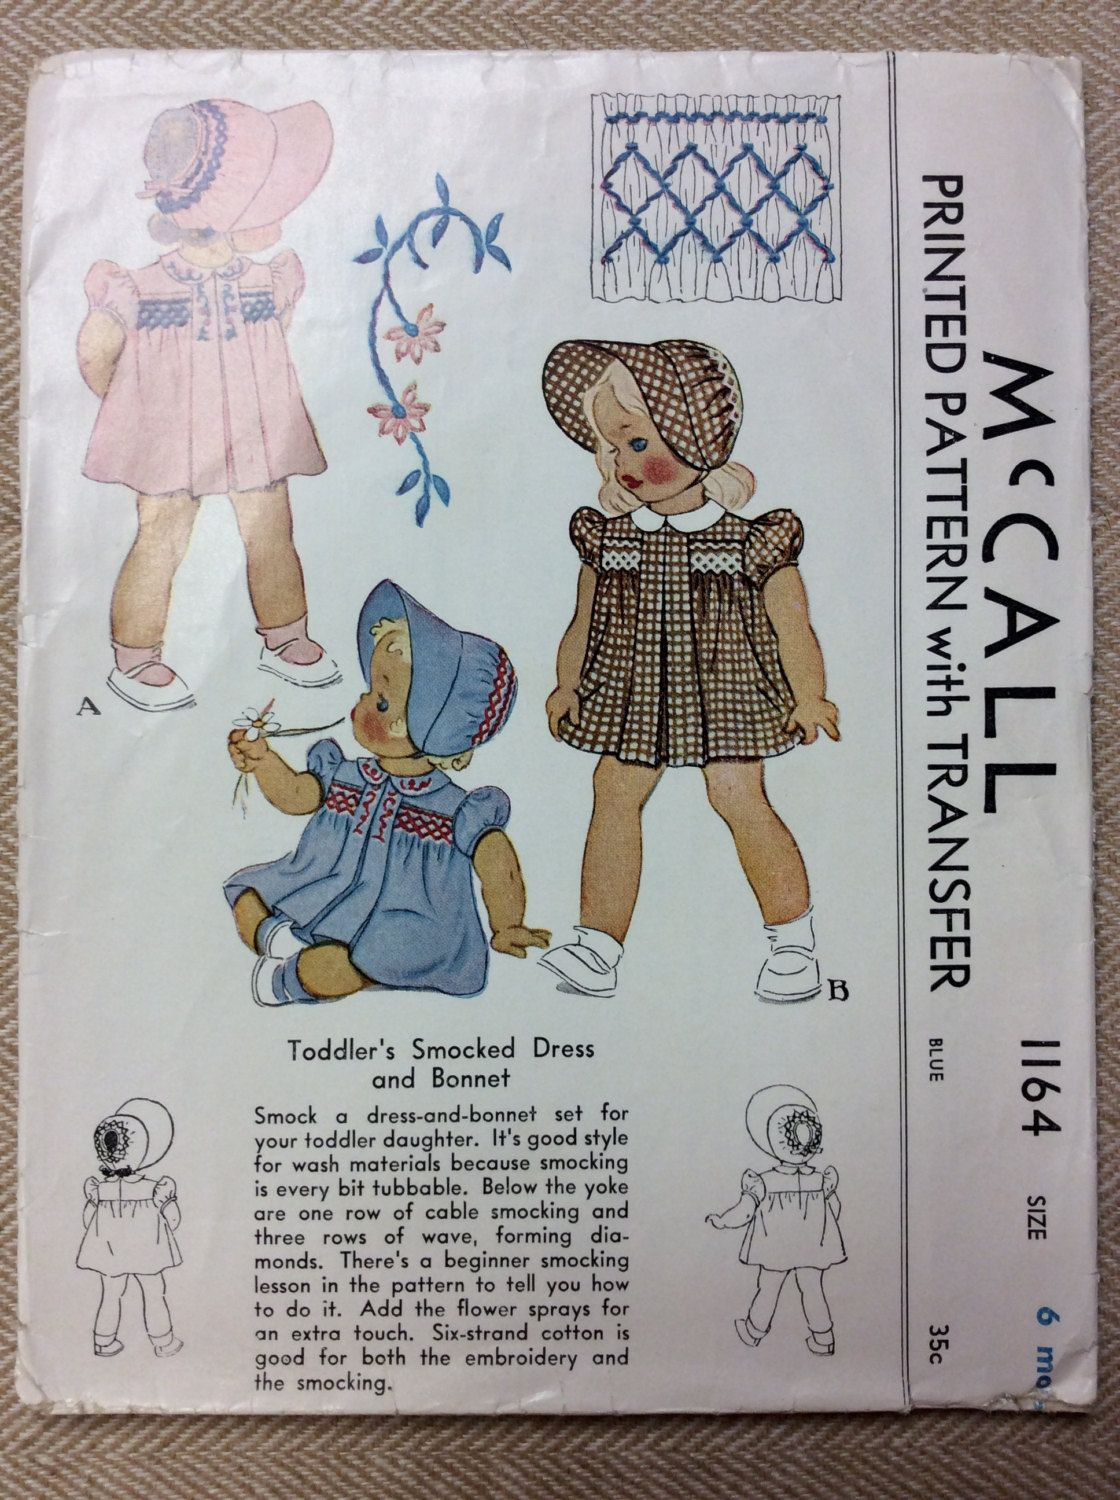 Vintage McCalls Printed Pattern 1164 TODDLERS SMOCKED DRESS AND BONNET This is a very cute little toddler sewing Pattern. The vintage McCalls